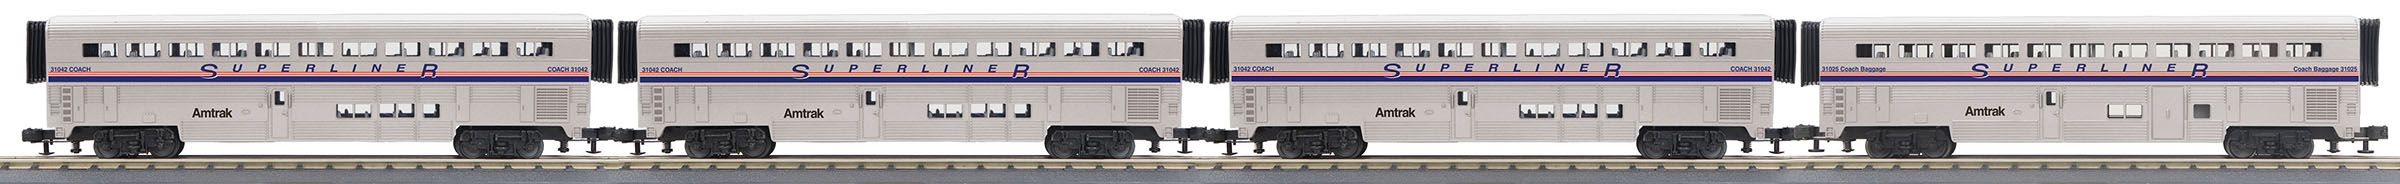 MTH306538 MTH Electric Trains O-31 SuperLiner Set, Amtrak/Phase IV #31025